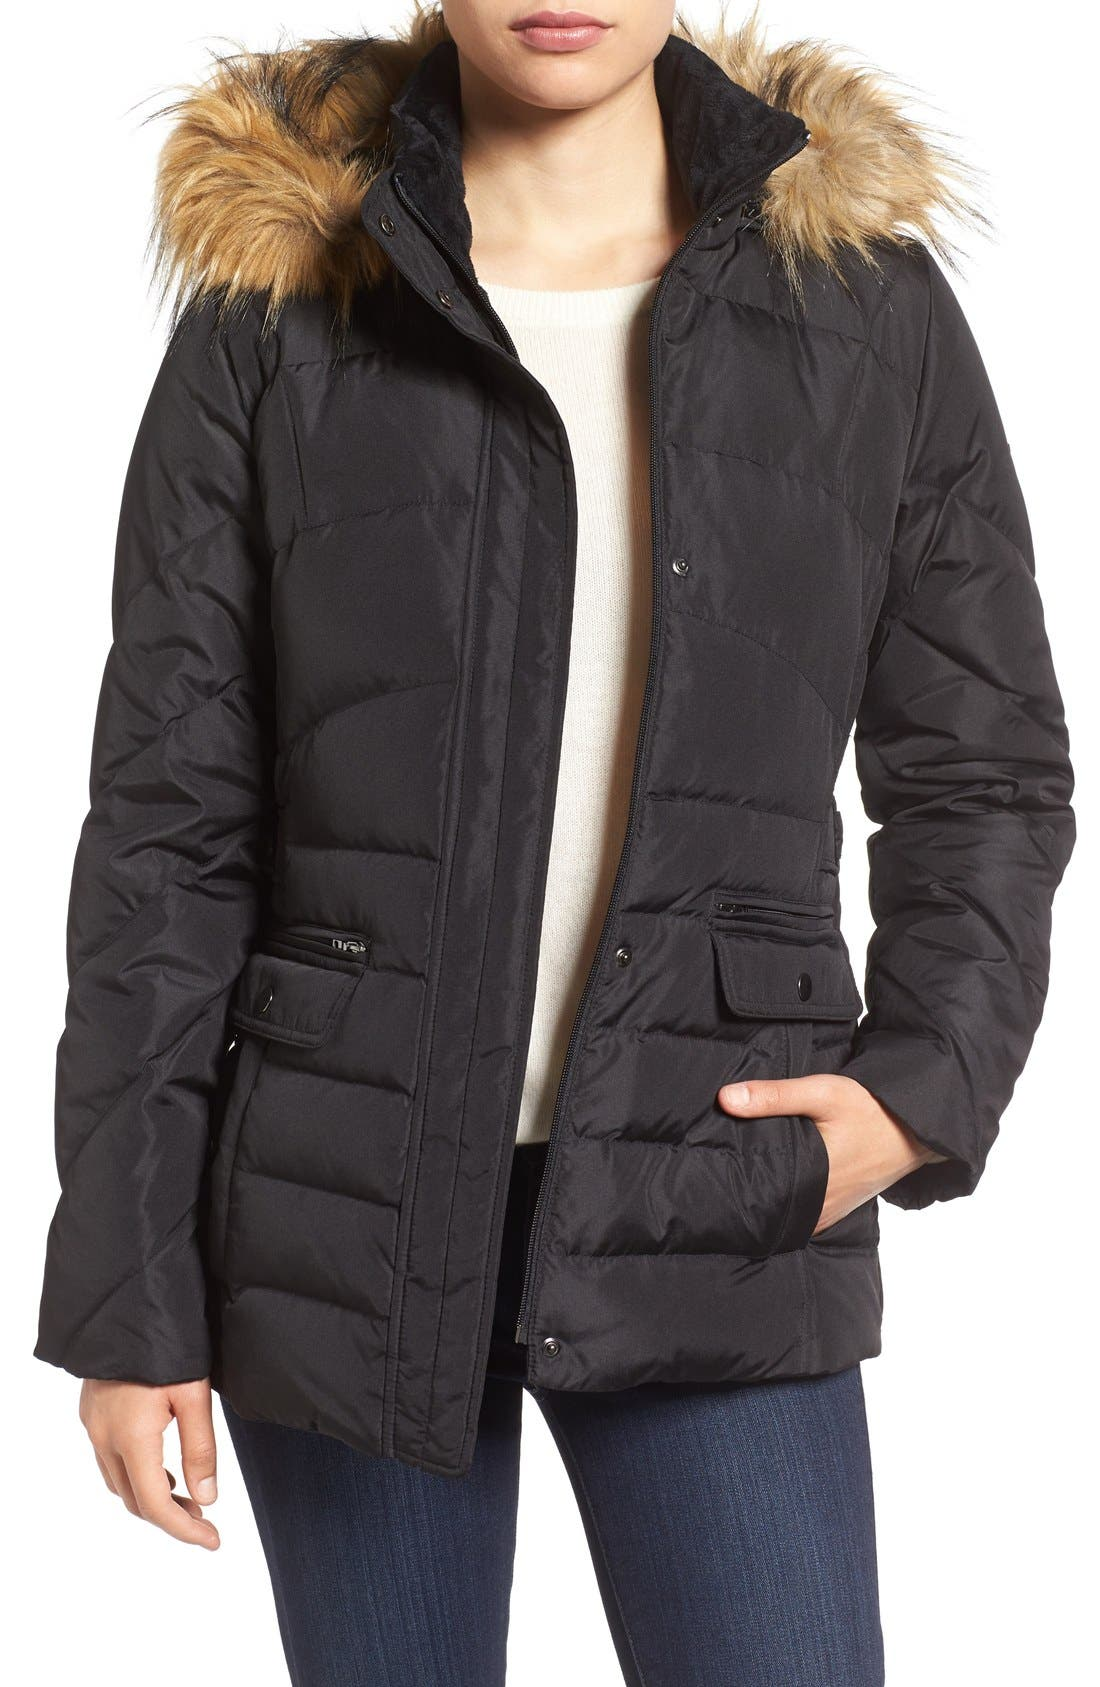 Alternate Image 1 Selected - Larry Levine Water Repellent Quilted Jacket with Faux Fur Trim